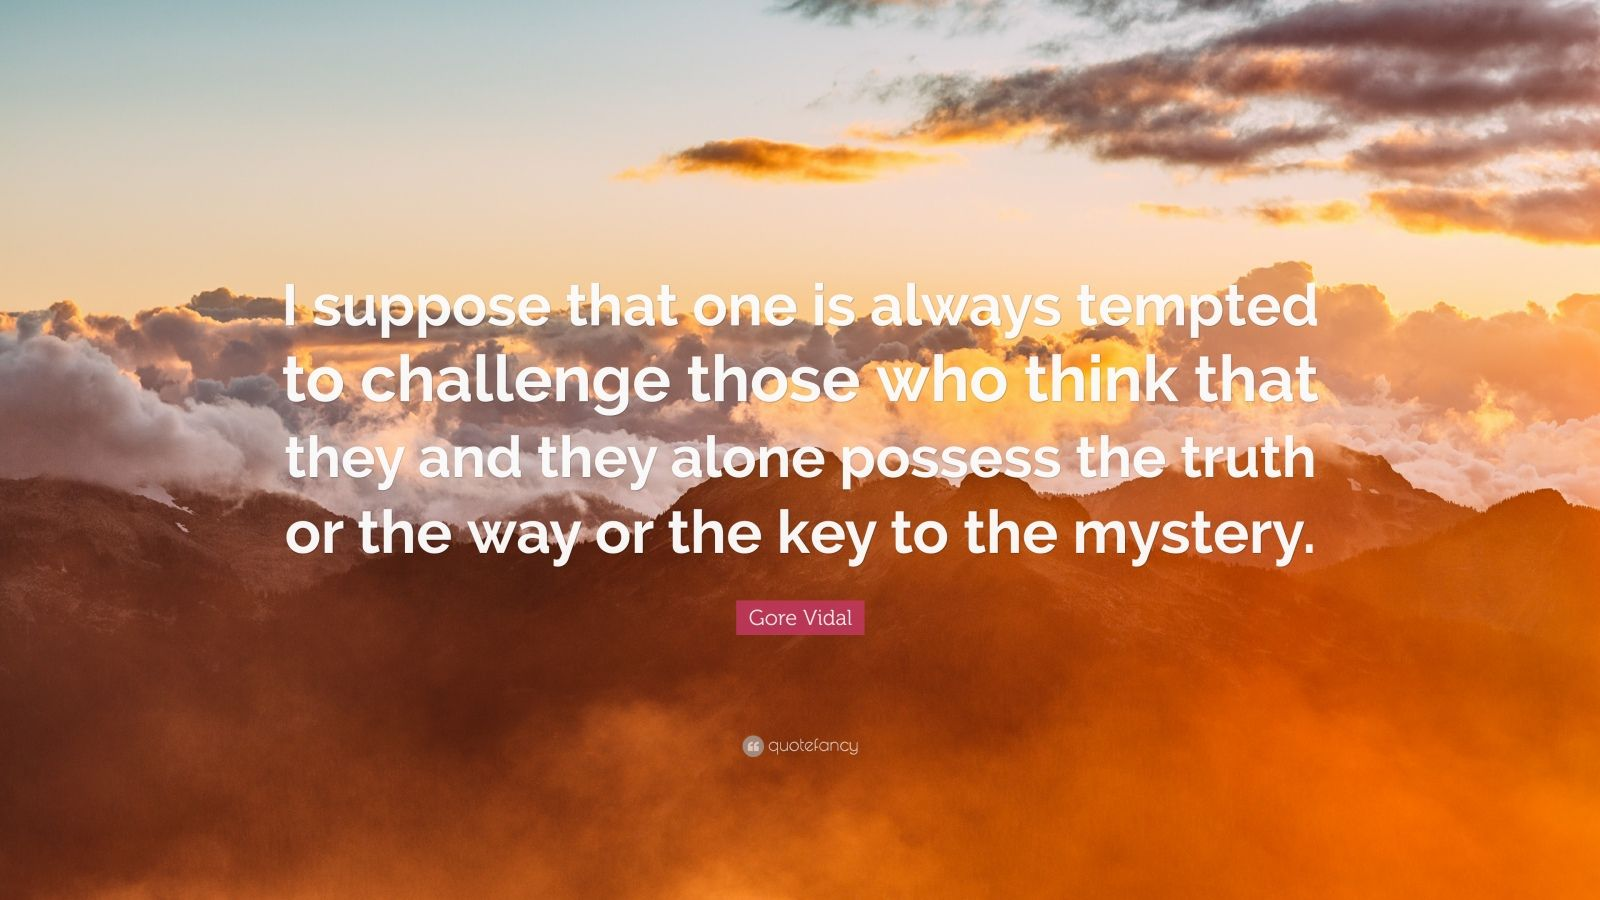 """Gore Vidal Quote: """"I suppose that one is always tempted to challenge those who think that they and they alone possess the truth or the way or the key to the mystery."""""""